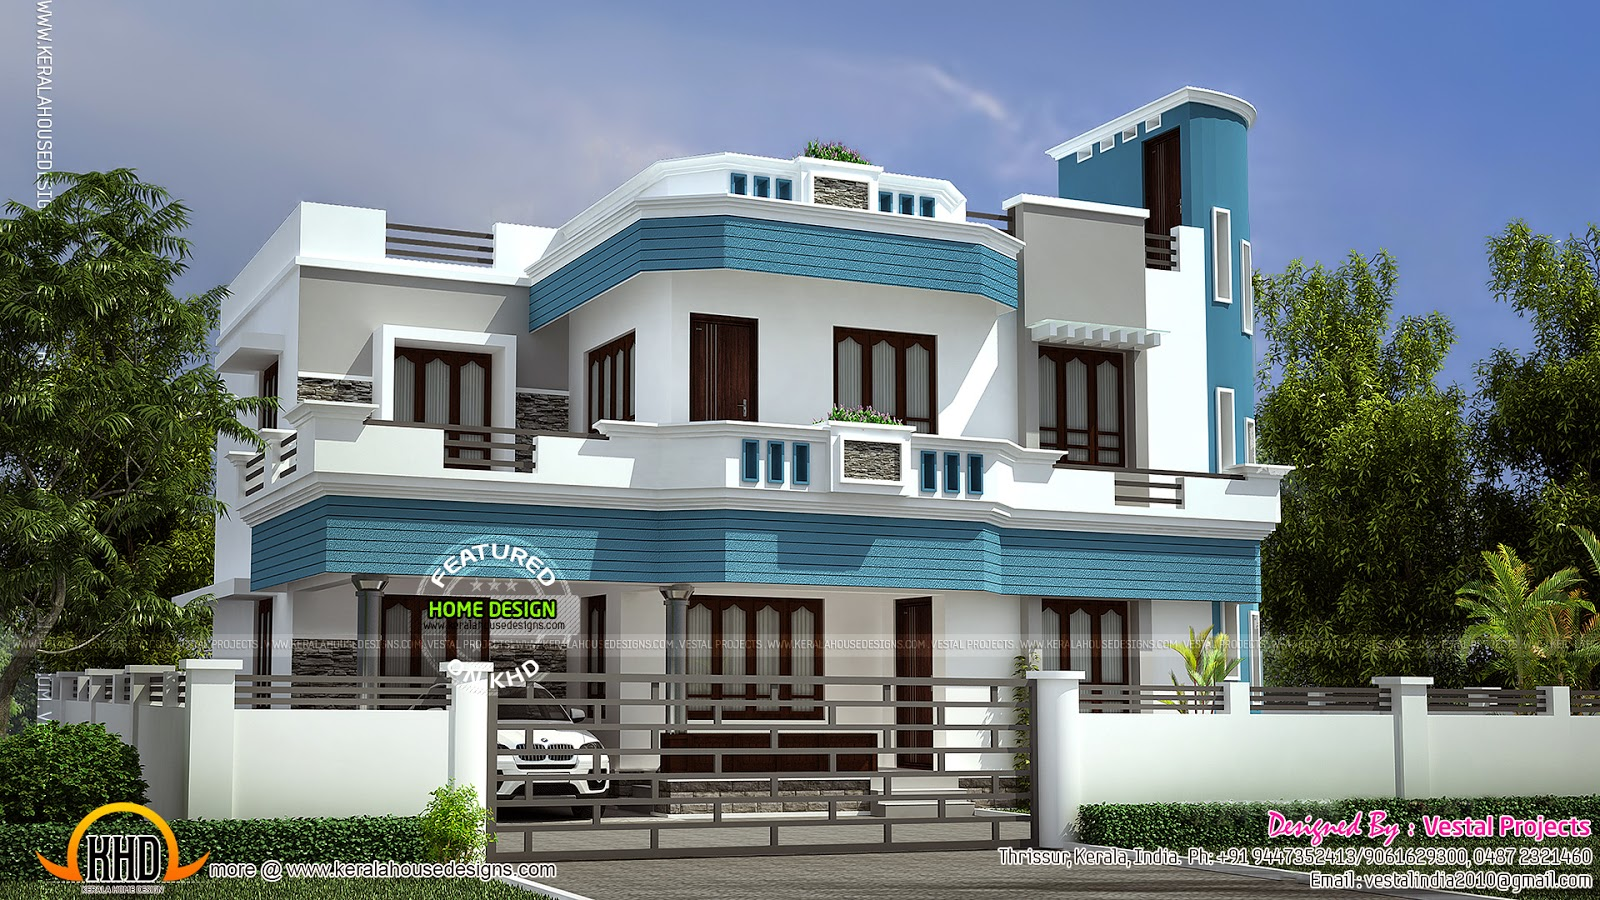 Awesome house by vestal projects kerala home design and Awesome house plans